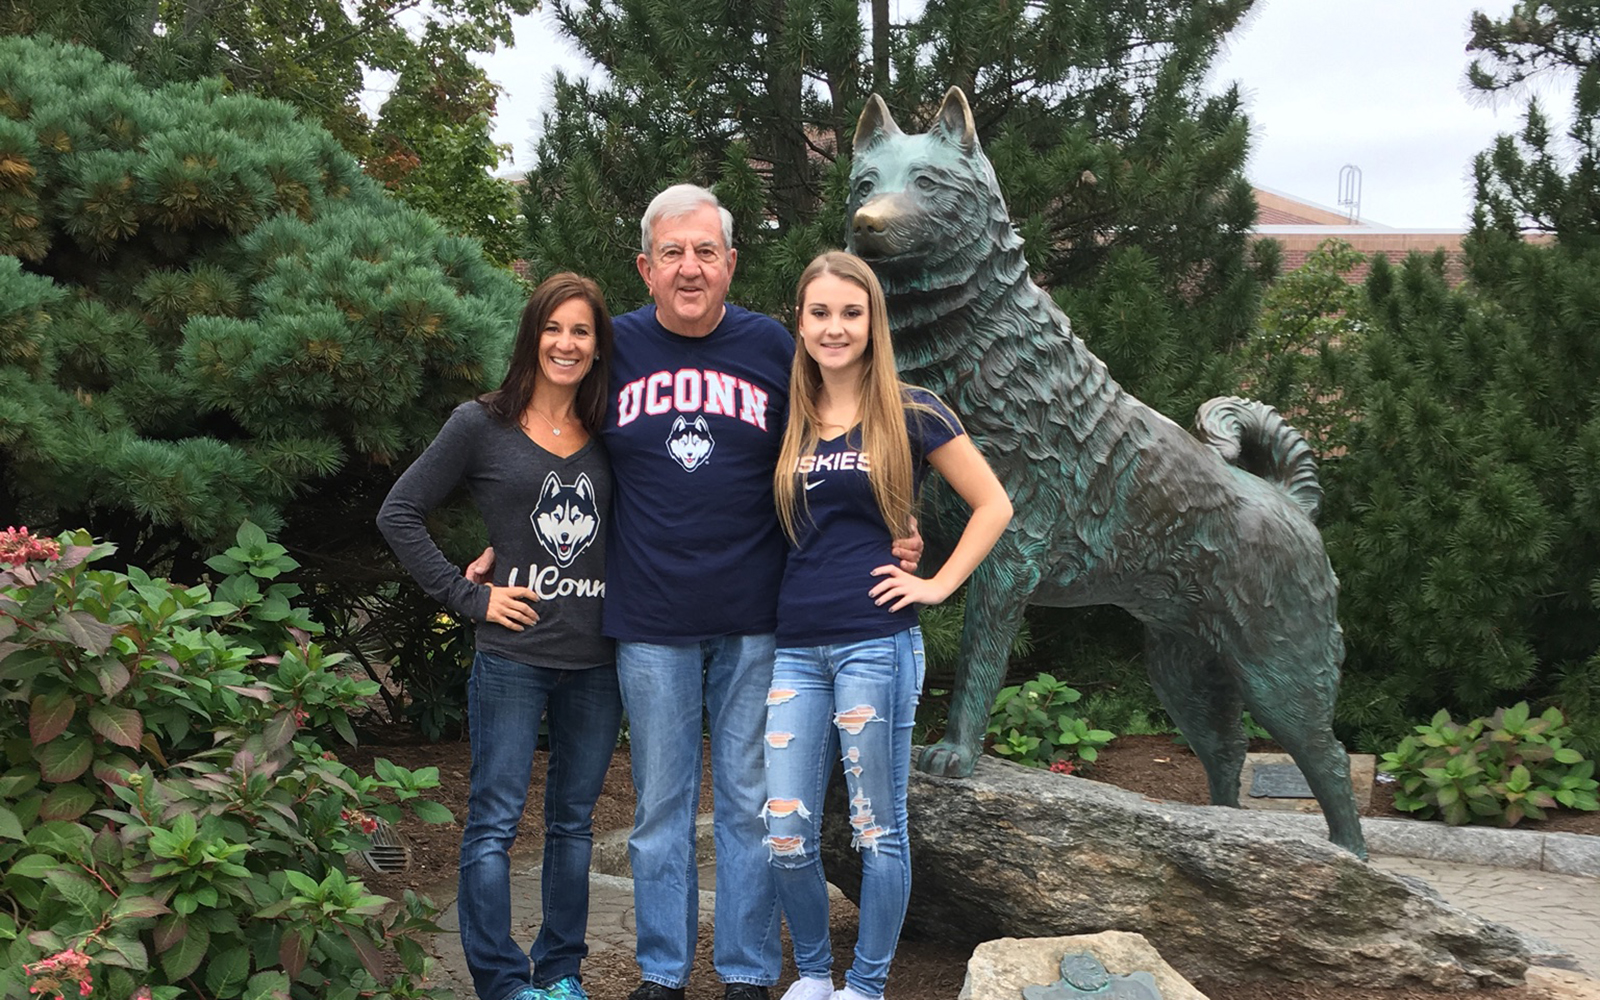 The Fochi family has a long and proud connection to the University of Connecticut because they believe it provides a great education for the money. Pictured above is alumnus Bill Fochi '63 with his daughter, Kerry Fochi Sanders '93, and his granddaughter Ashley Fochi '19. (Contributed photo).